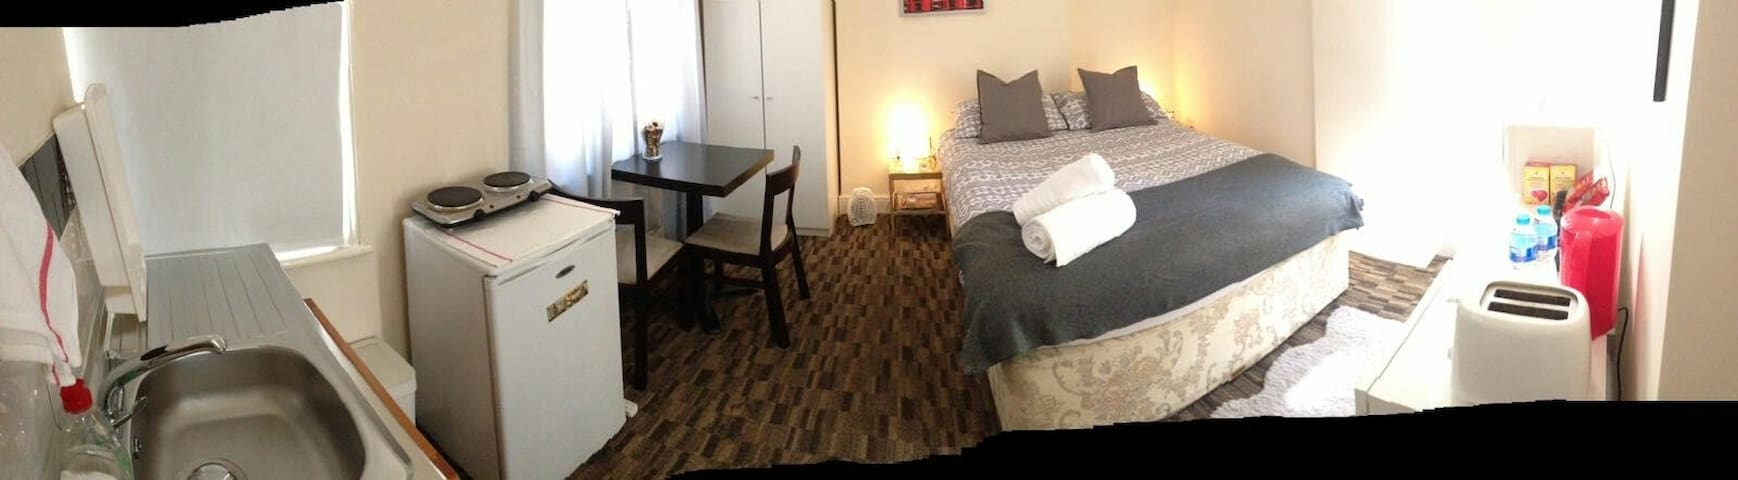 Entire suite flat near Paddington Station - London - Apartment